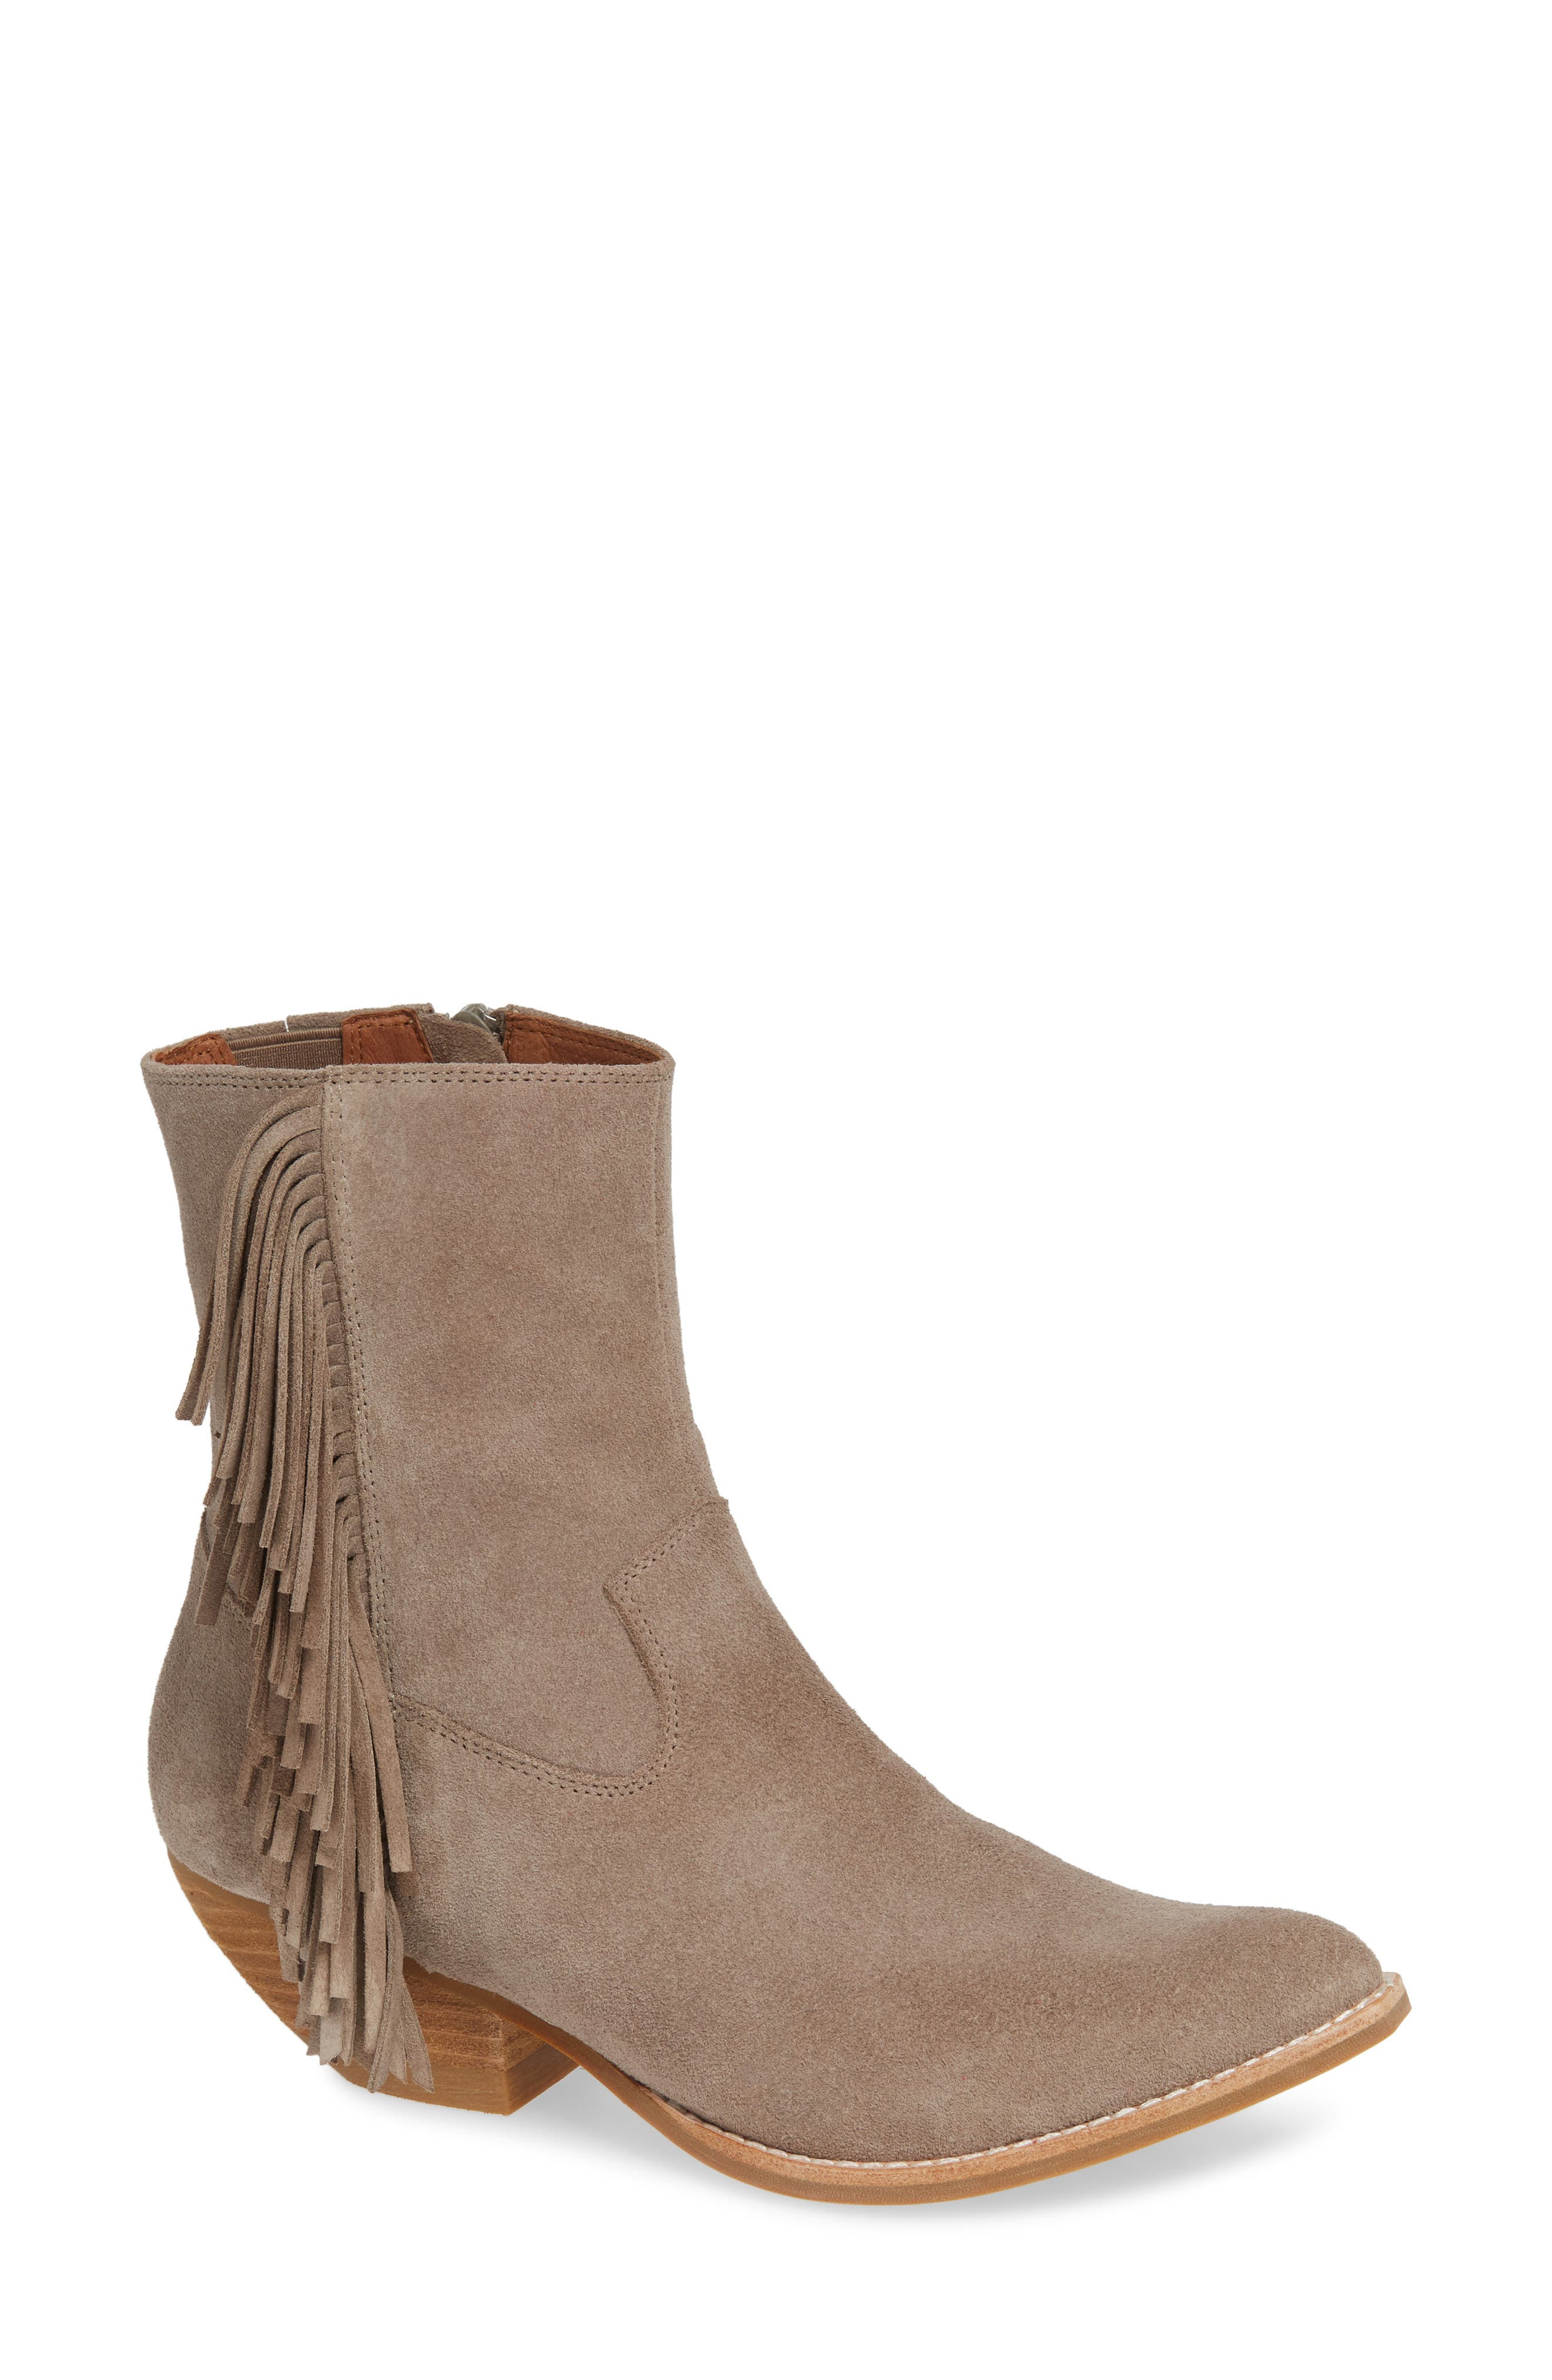 Jeffrey Campbell Hastings Fringe Bootie